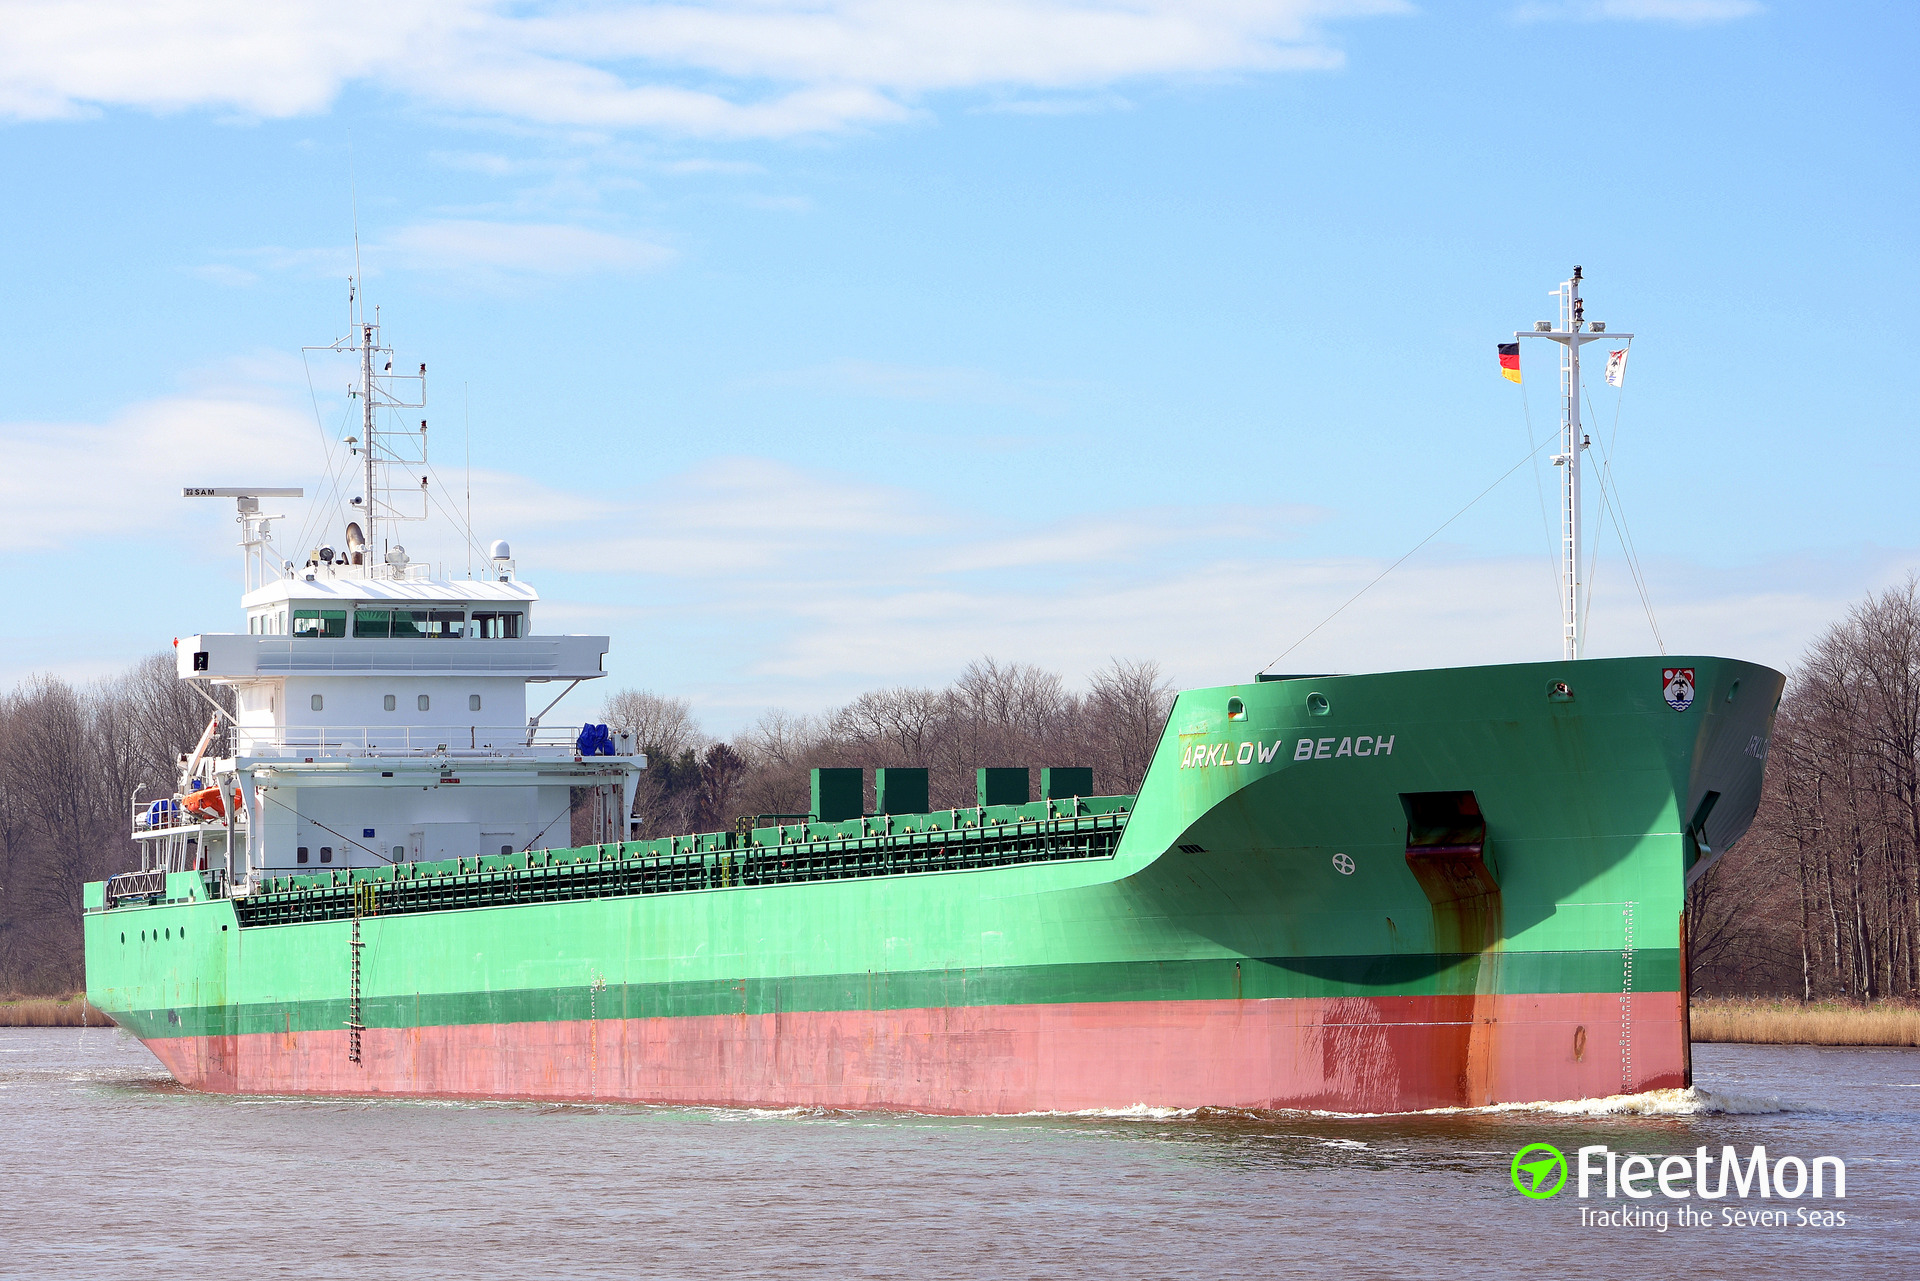 Dutch freighter Arklow Beach collided with French fishing vessel Elluma, Bay of Biscay